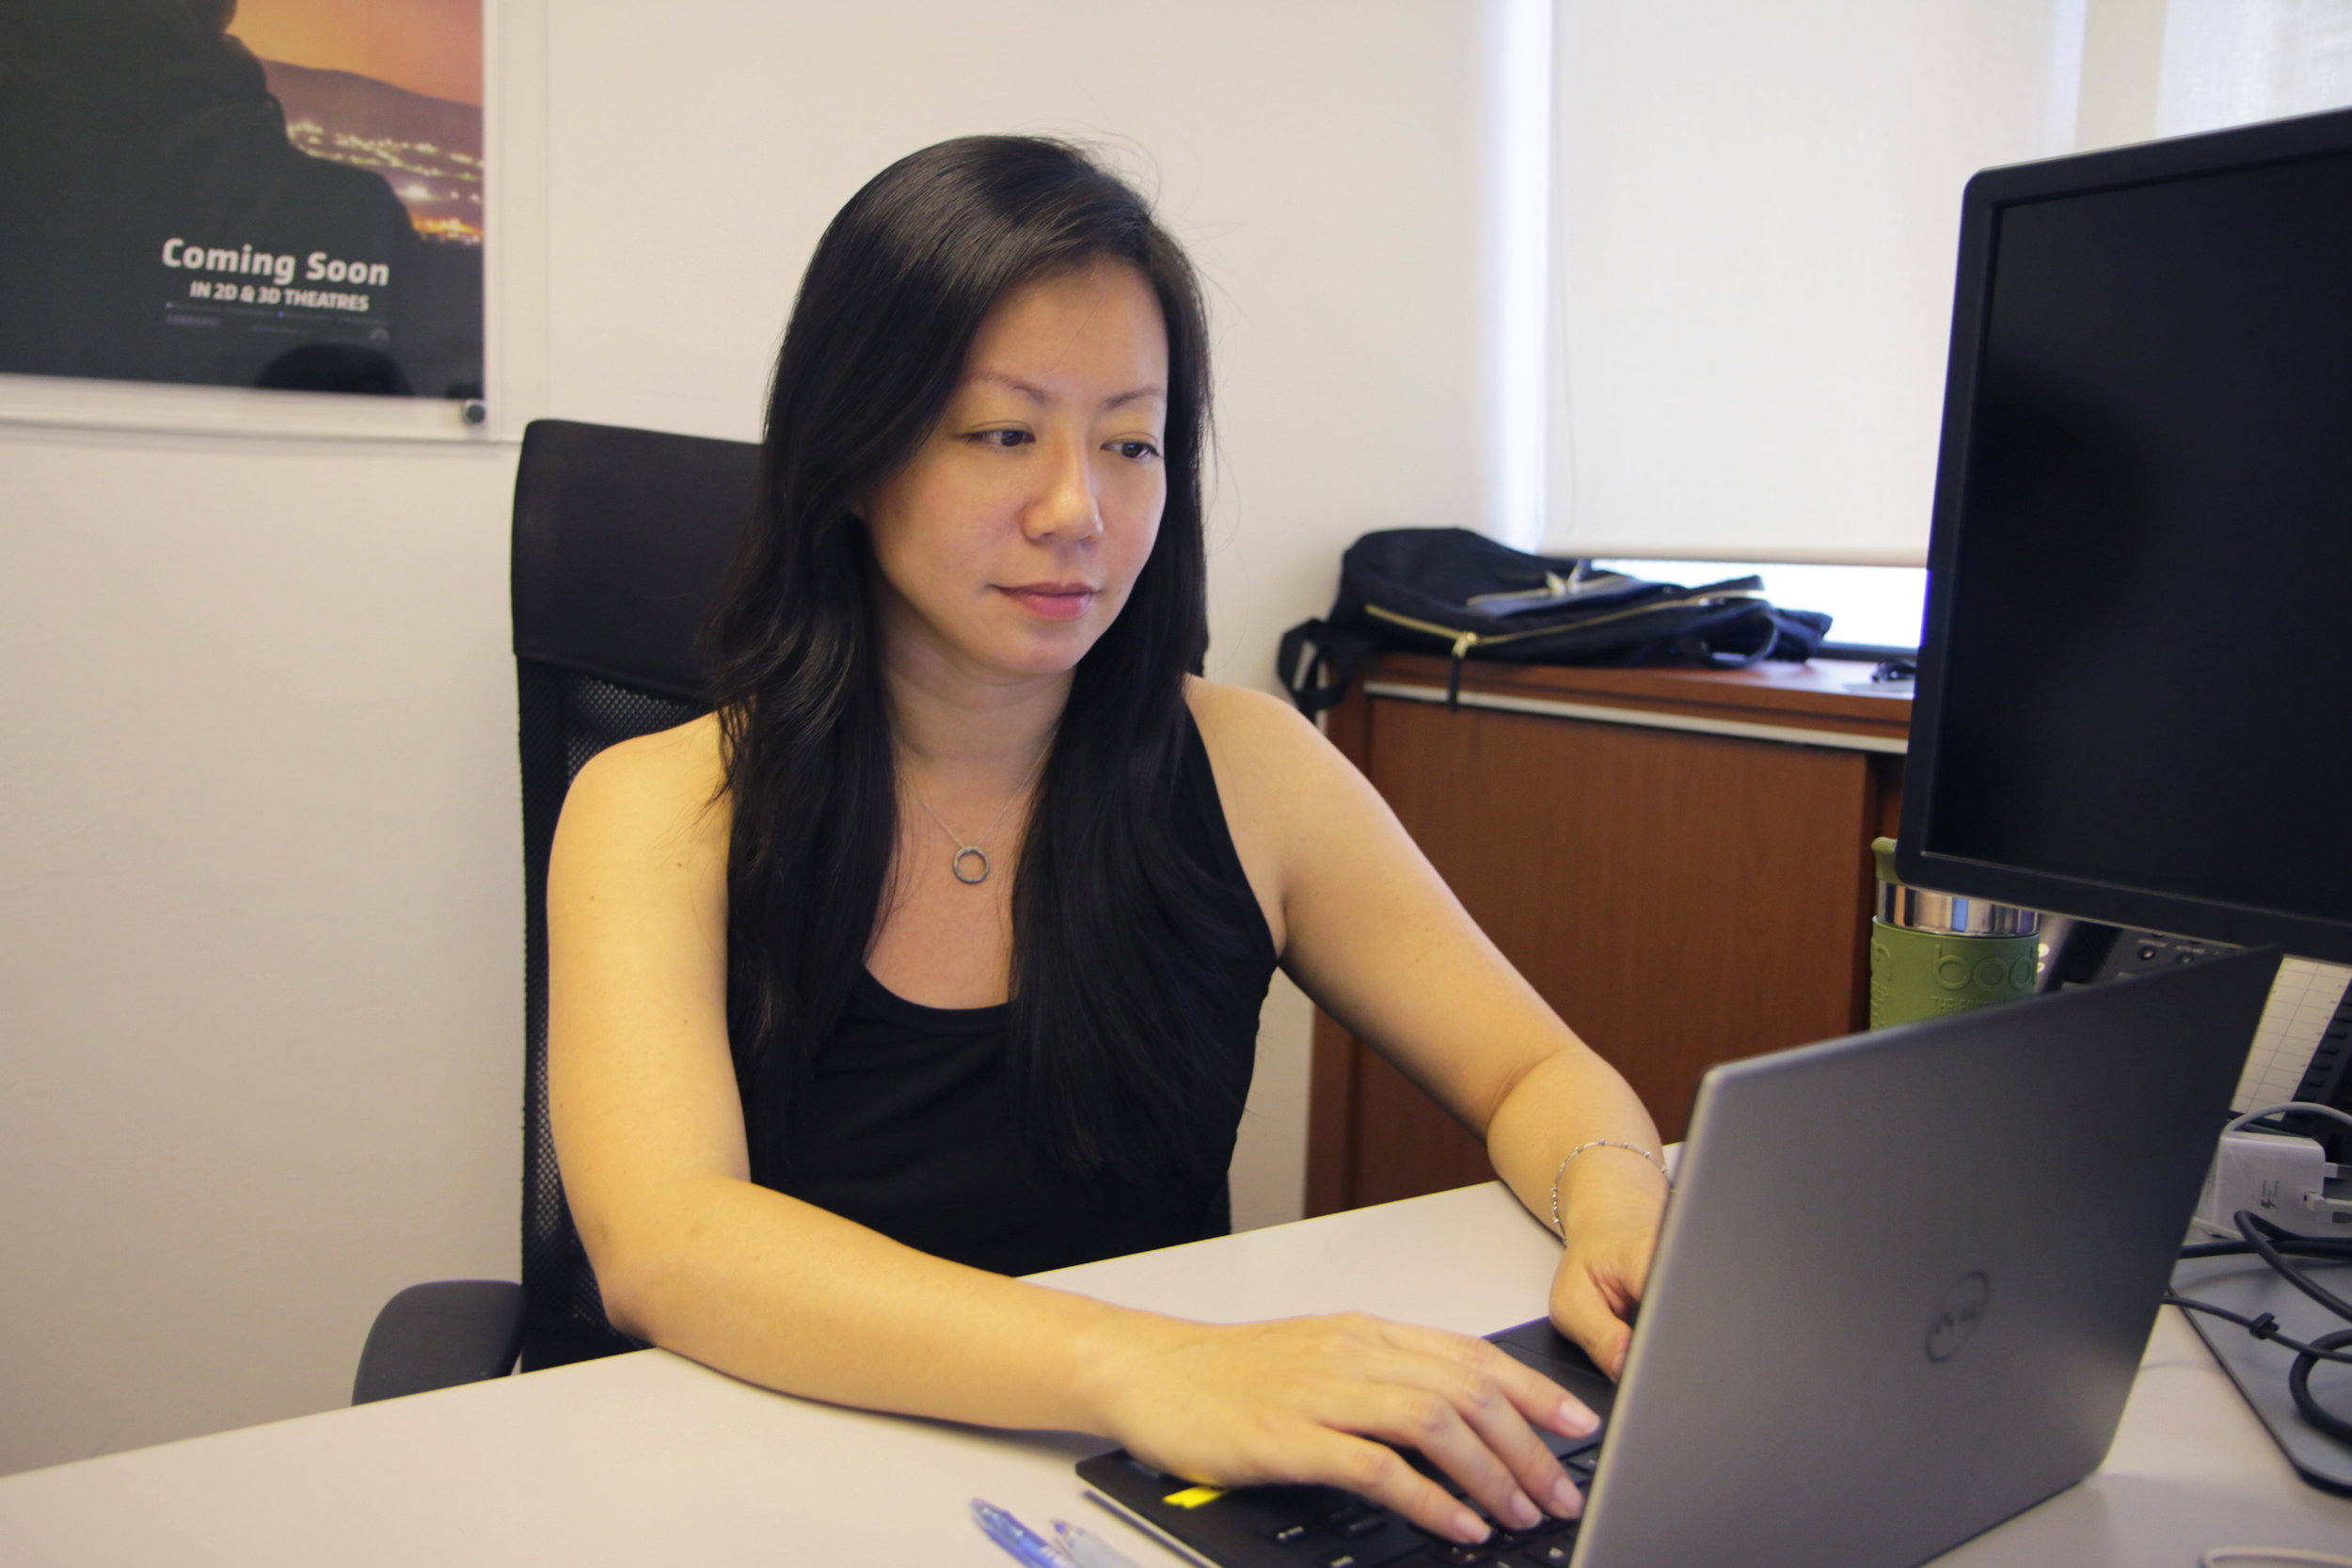 Yvonne is a Marketing Director with 19 years of work experience.